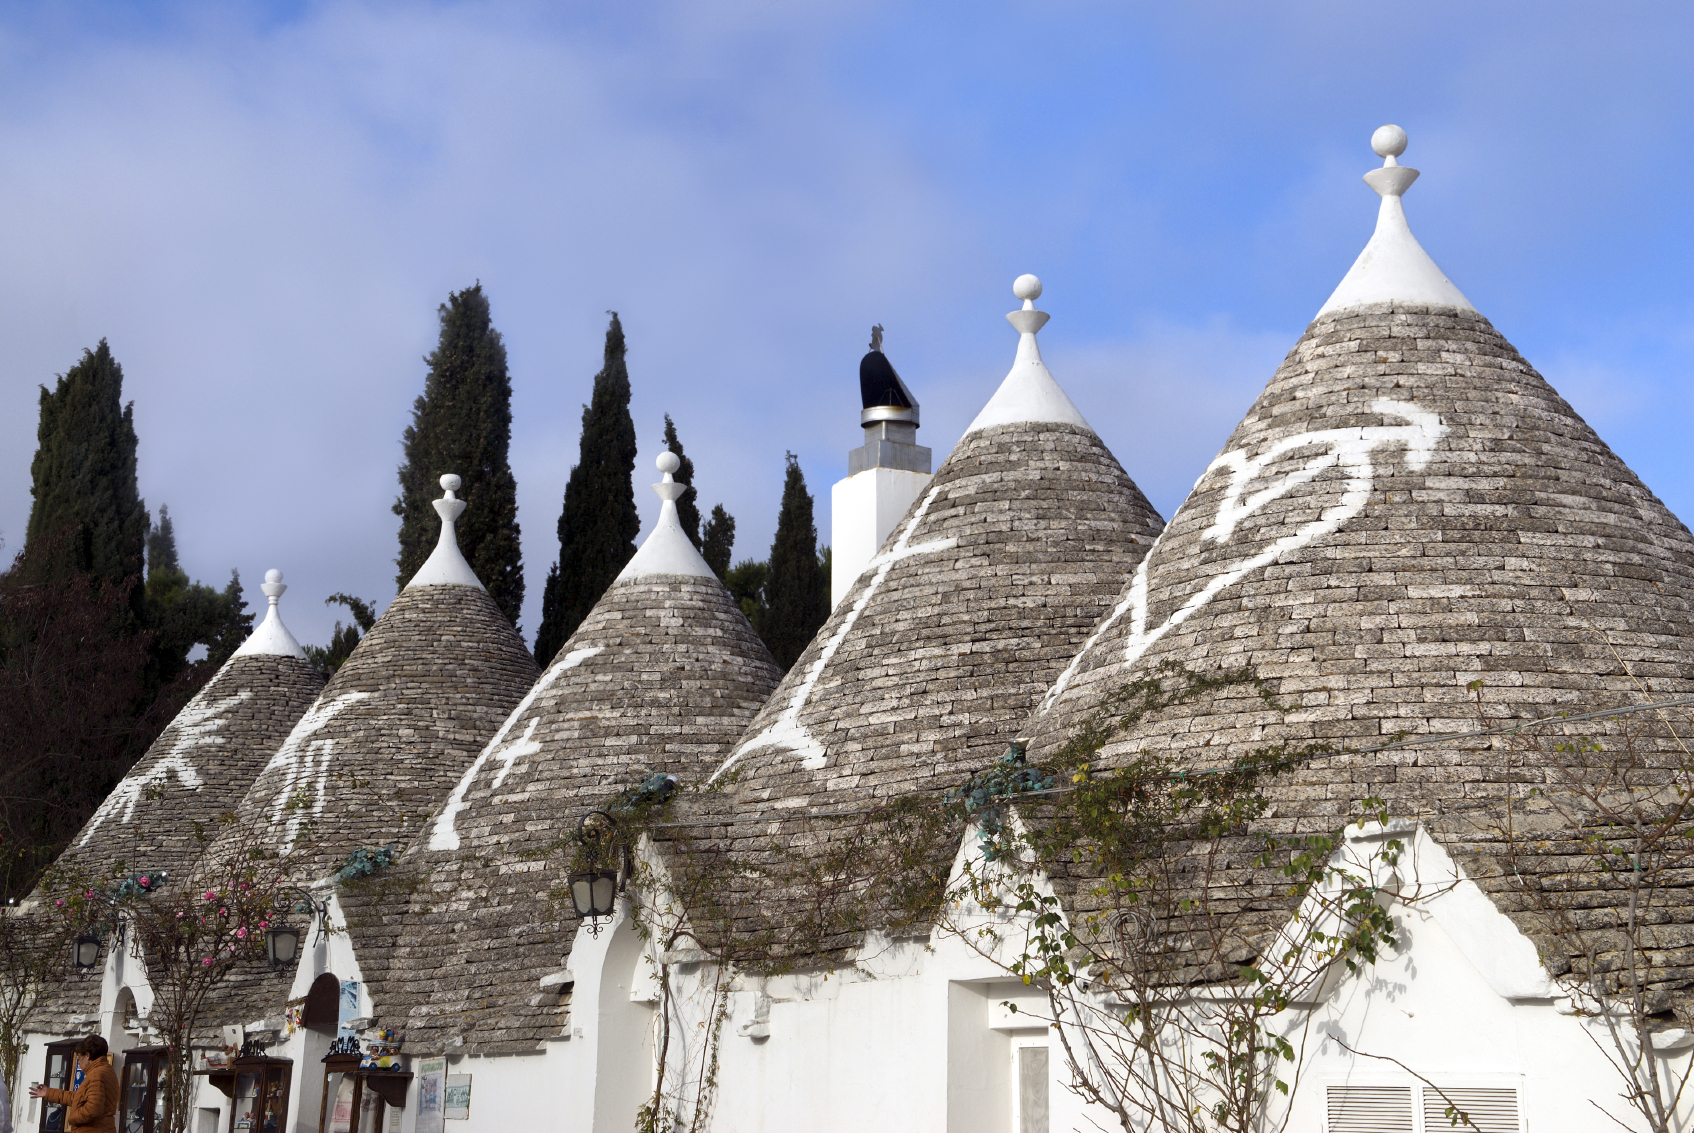 The Truly Cool Trulli Dwellings Of Alberobello Italy